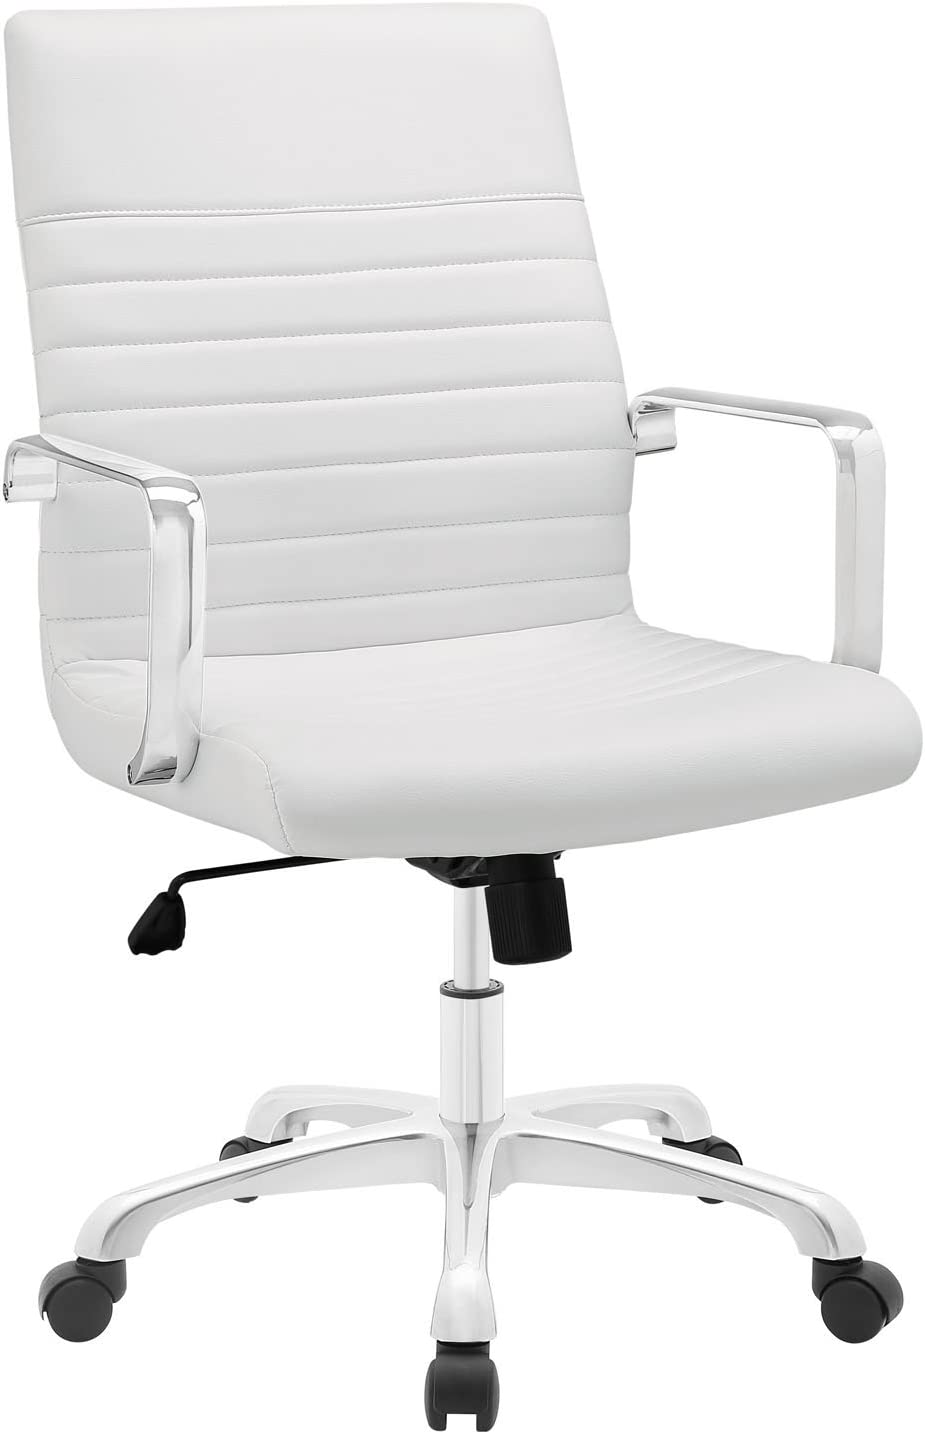 Tulsa Mall Modway MO-EEI-1534-WHI Finesse Mid Back Chair White Great interest Office